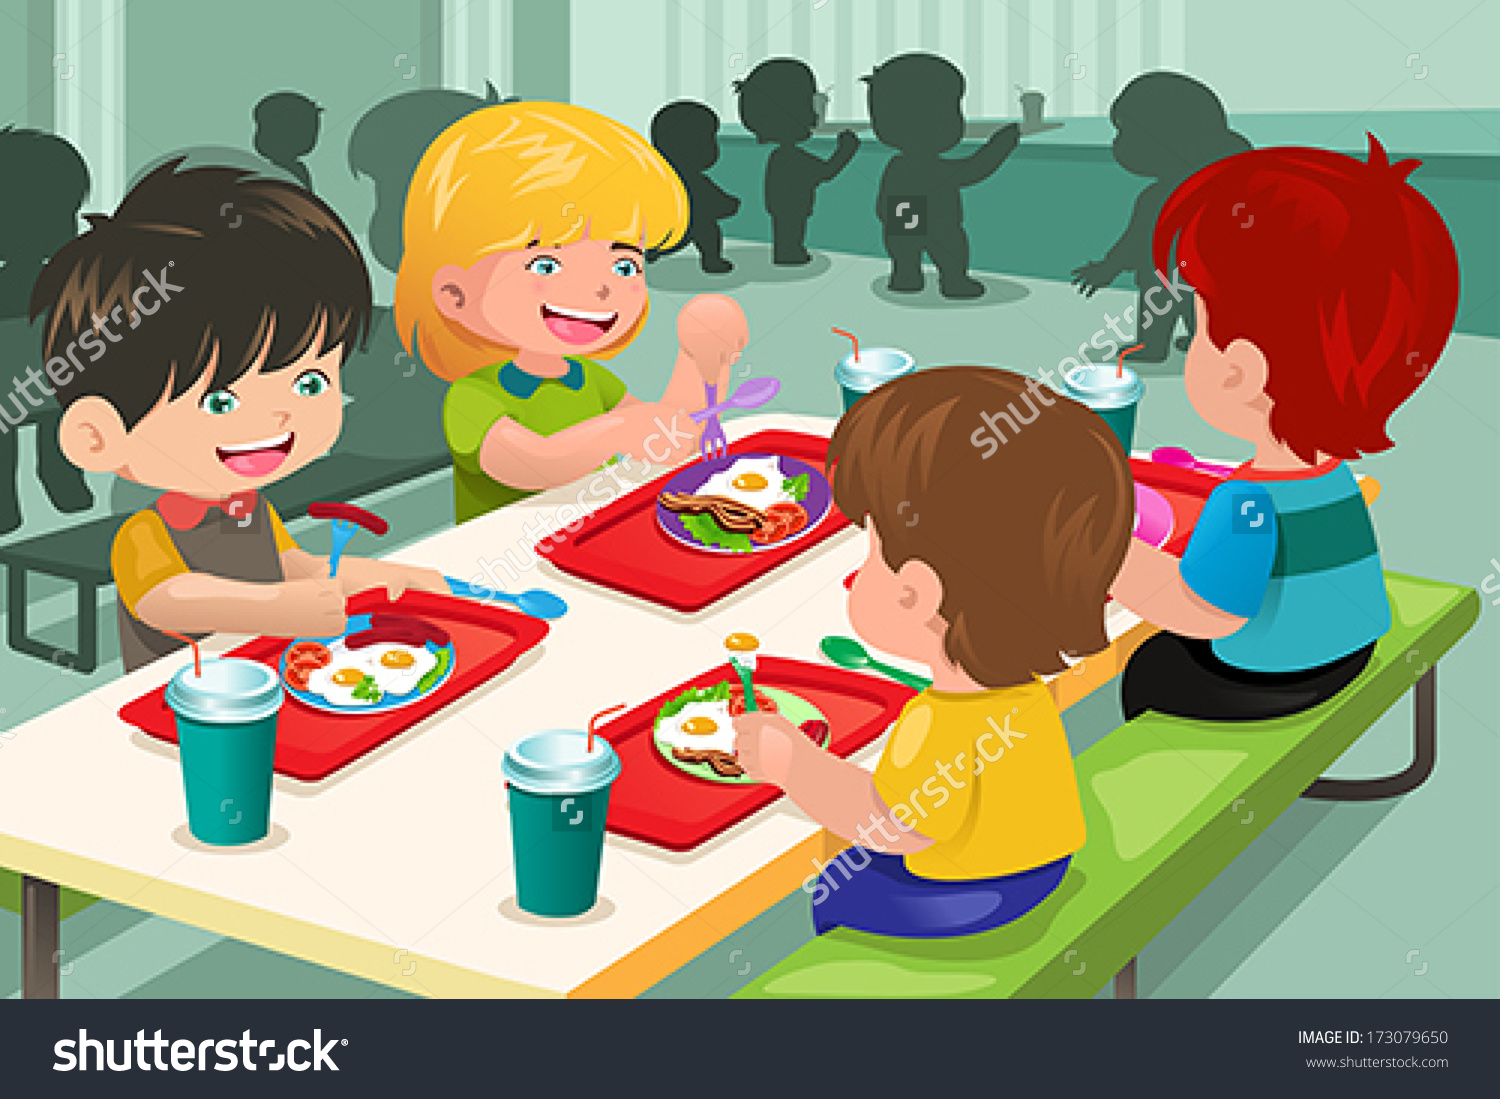 school cafeteria building clipart clipground school cafeteria clip art black and white school cafeteria clipart free